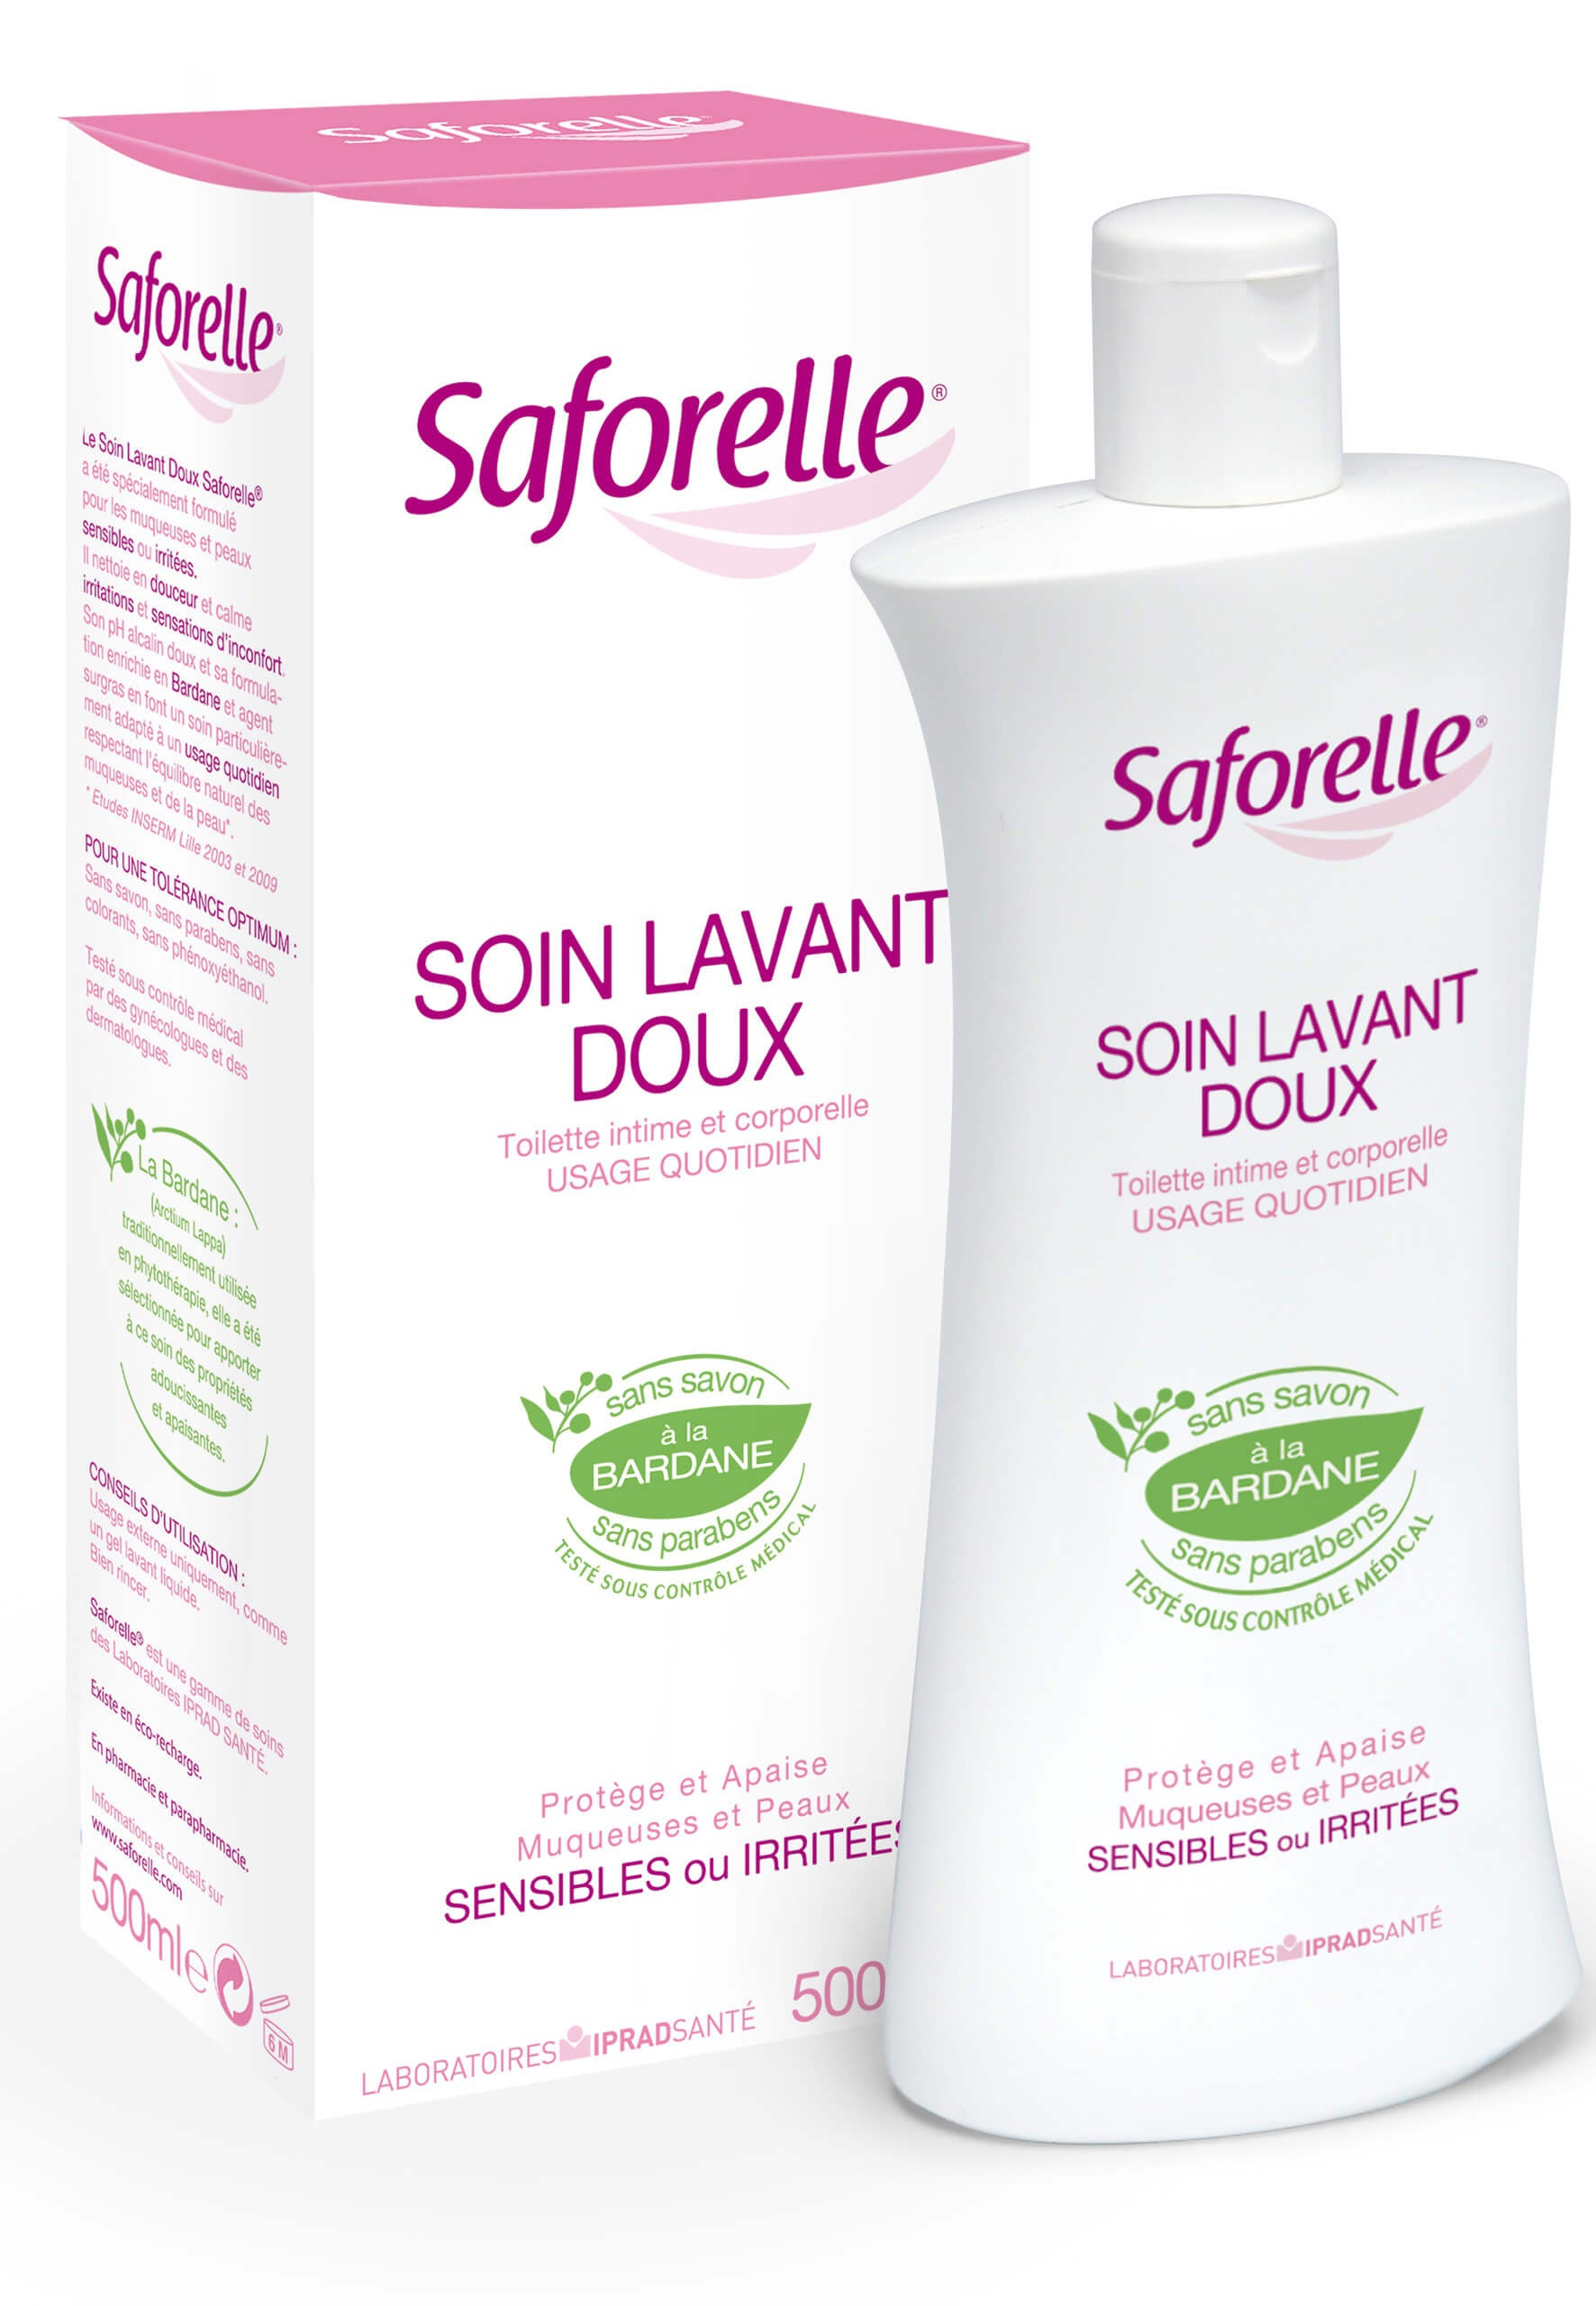 SAFORELLE Gentle Cleansing Care